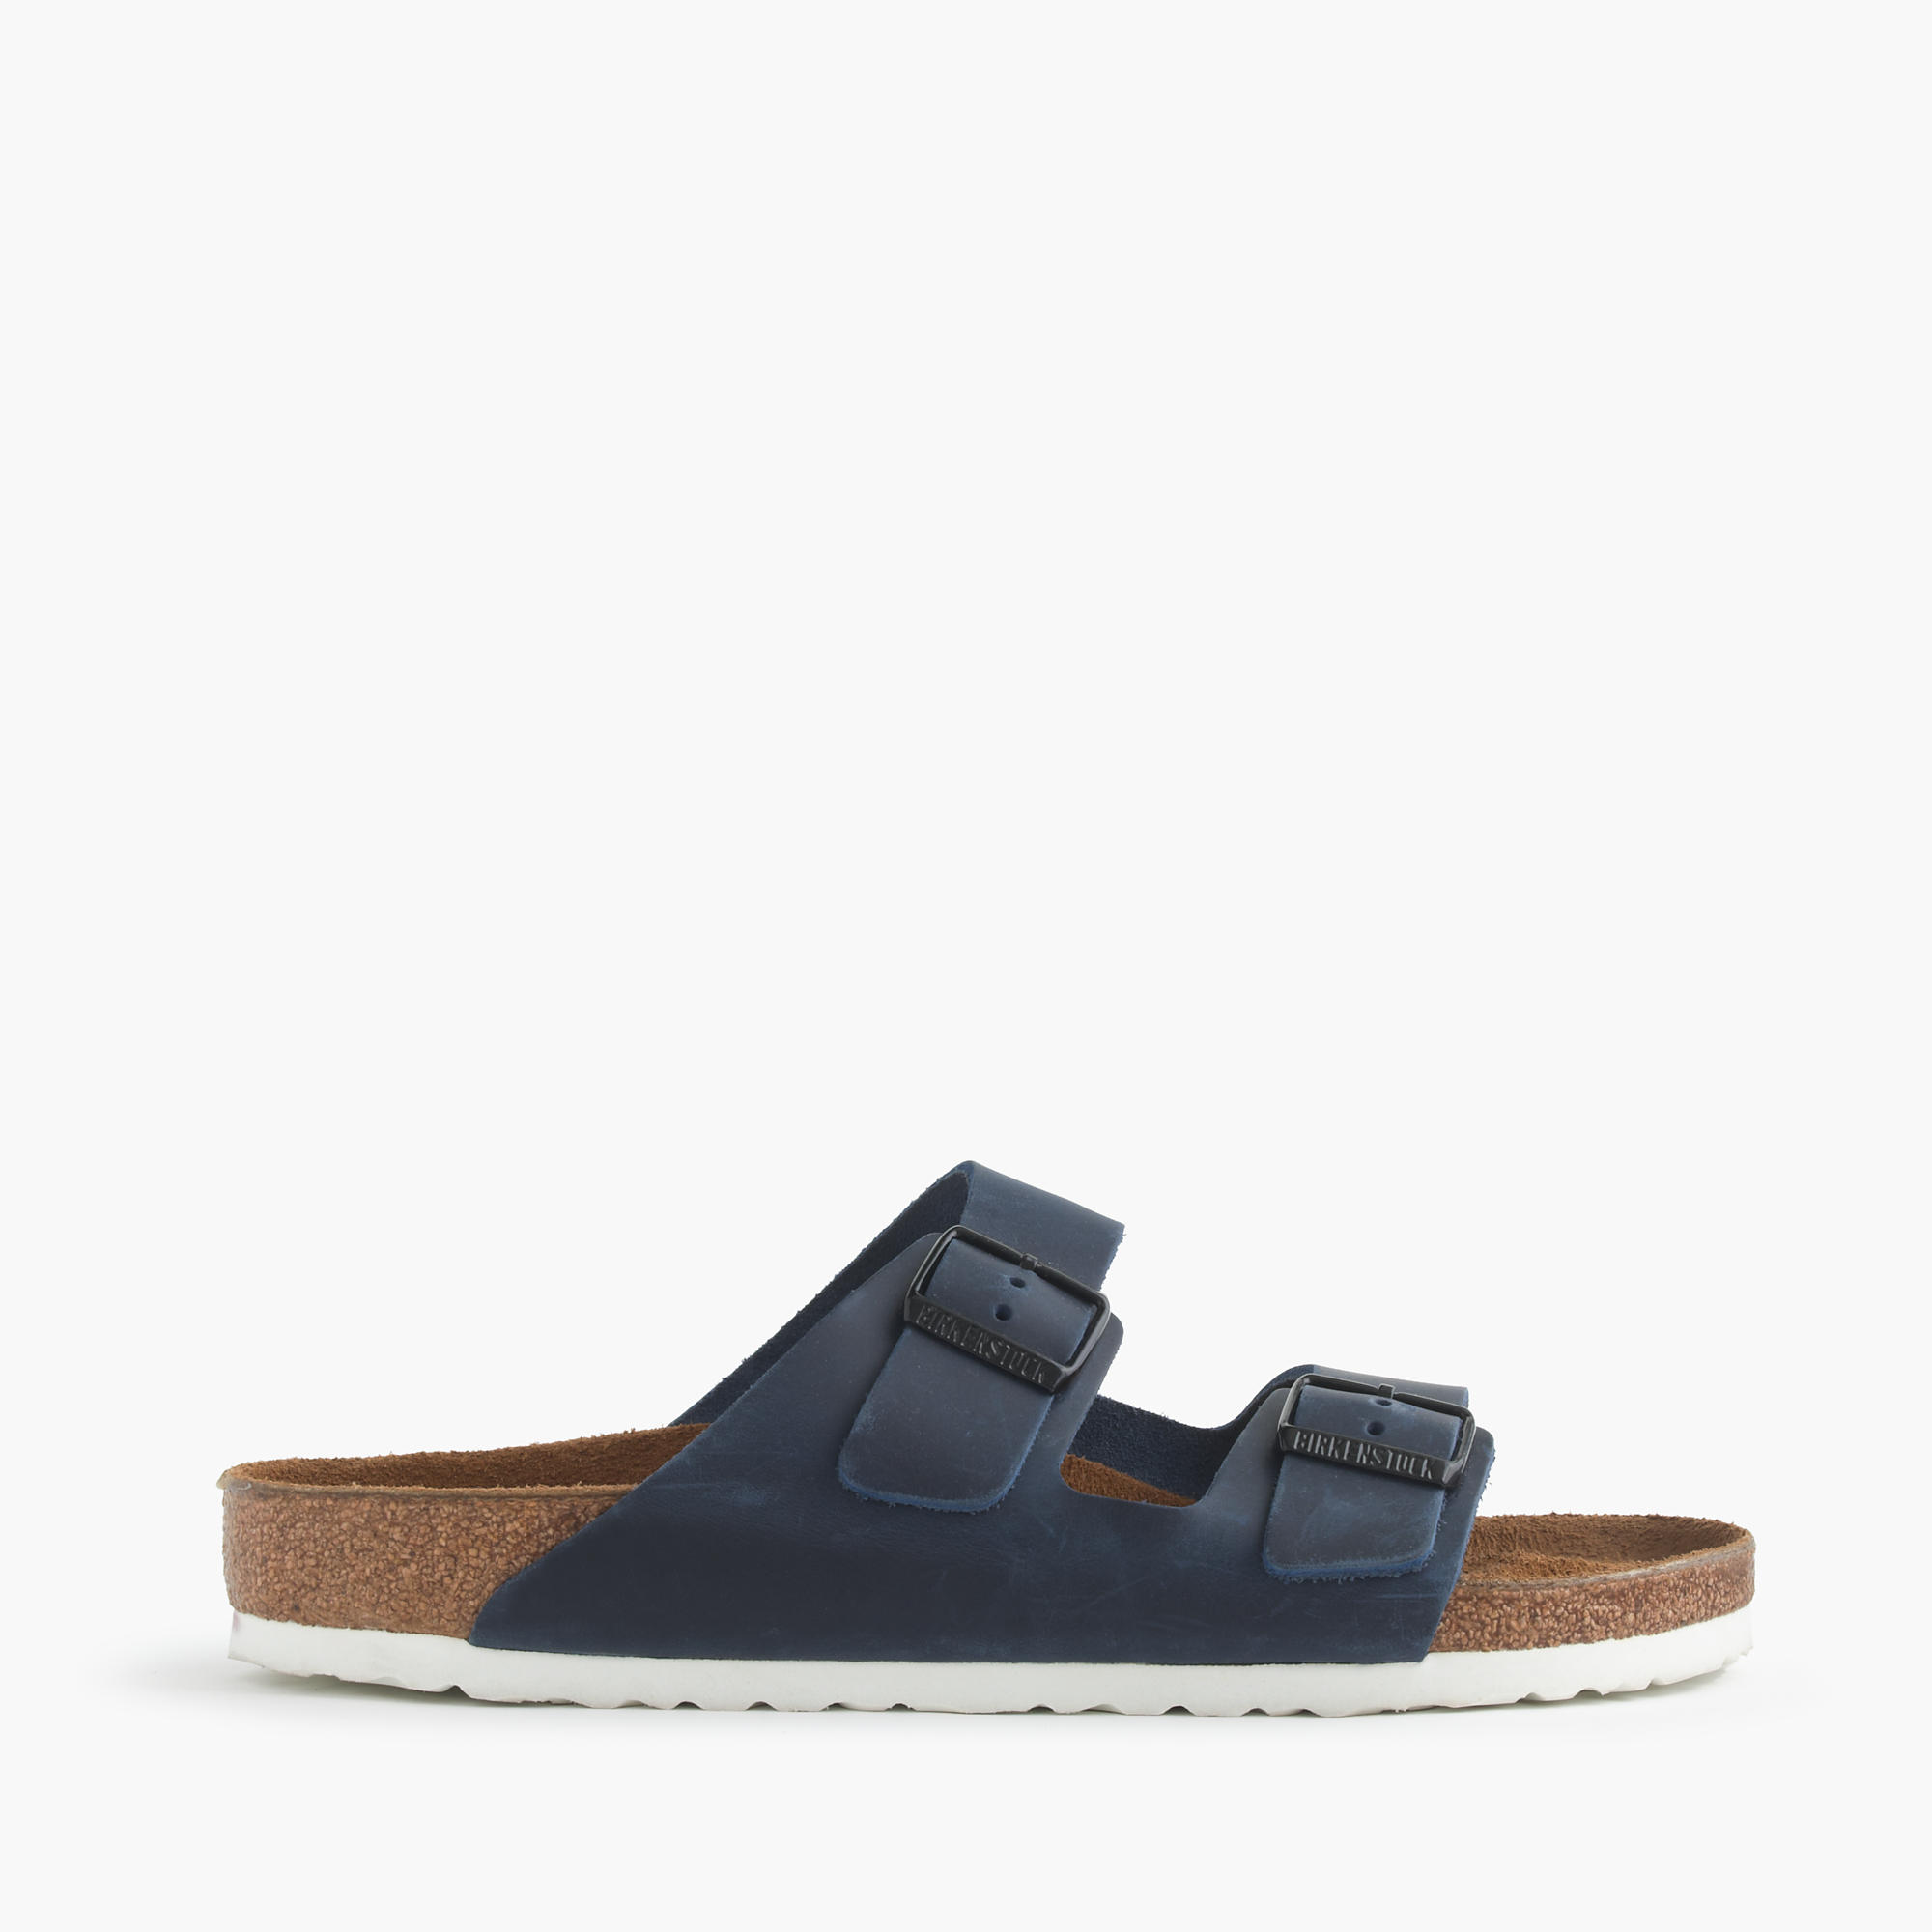 birkenstock for j crew arizona sandals j crew. Black Bedroom Furniture Sets. Home Design Ideas